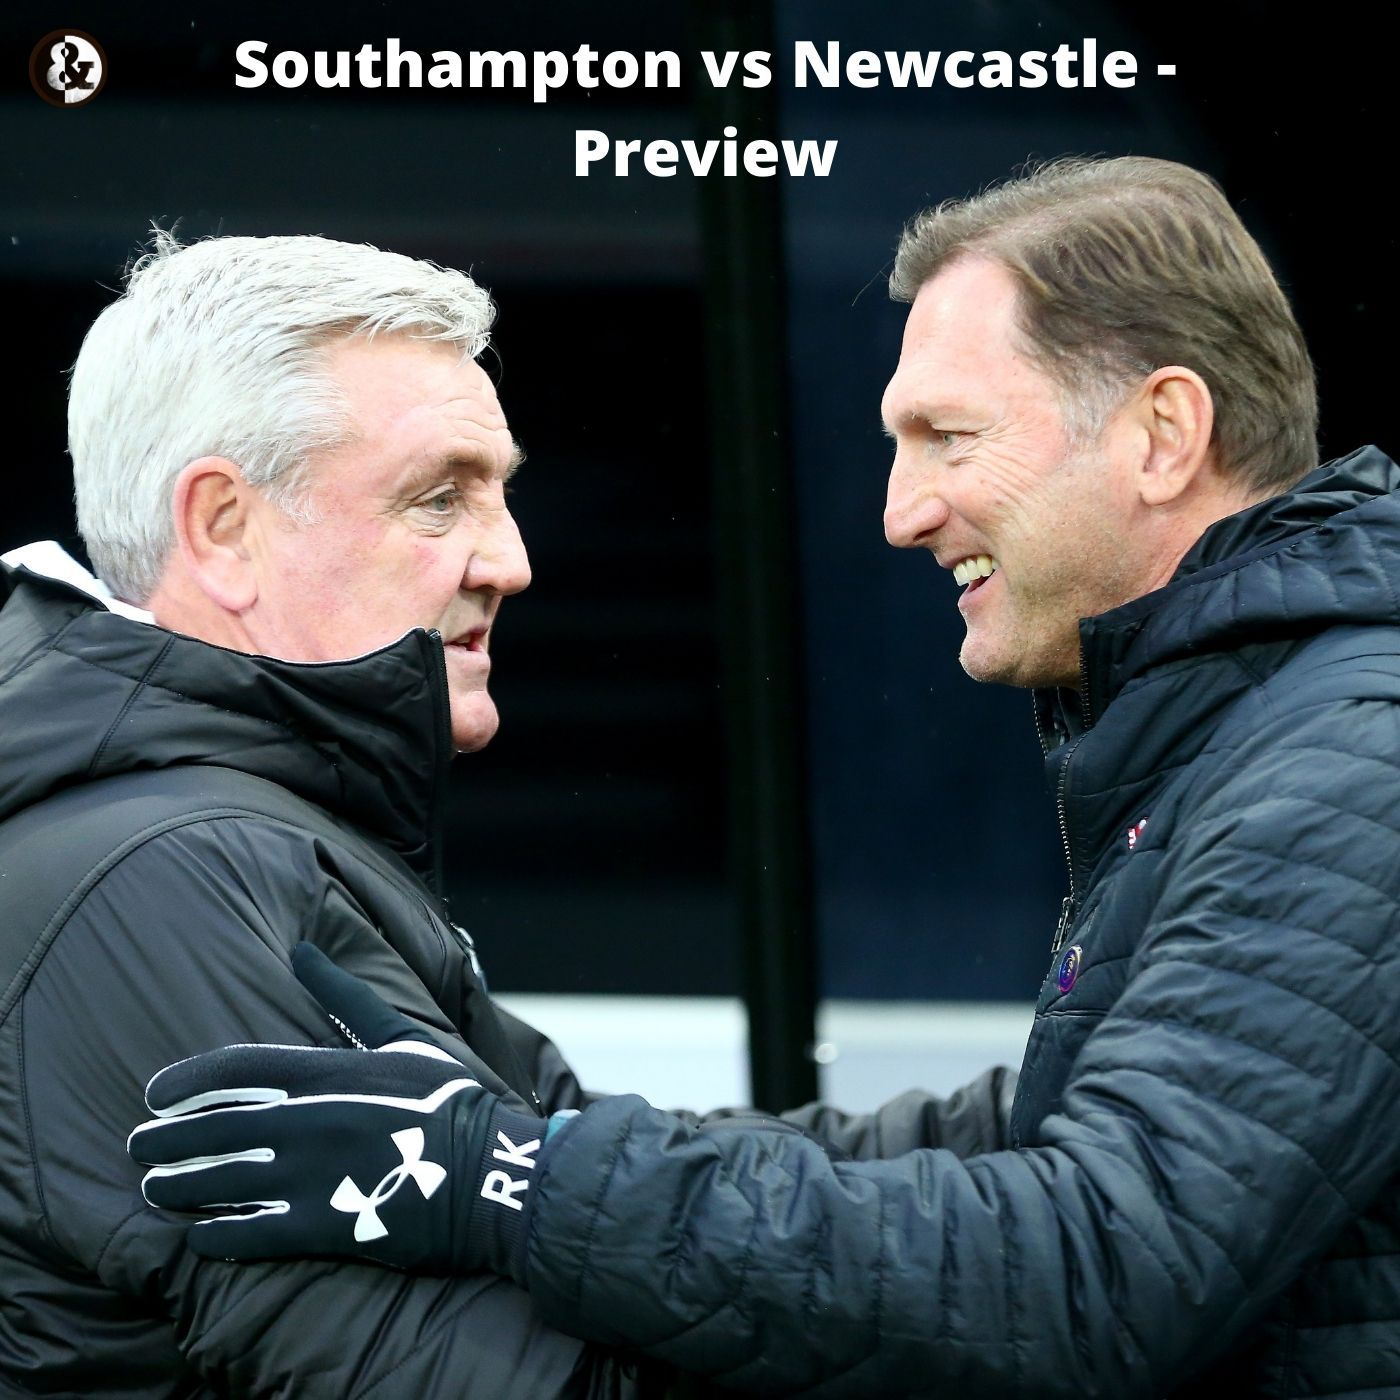 Southampton vs Newcastle Preview - The Magpies could break into the top 4